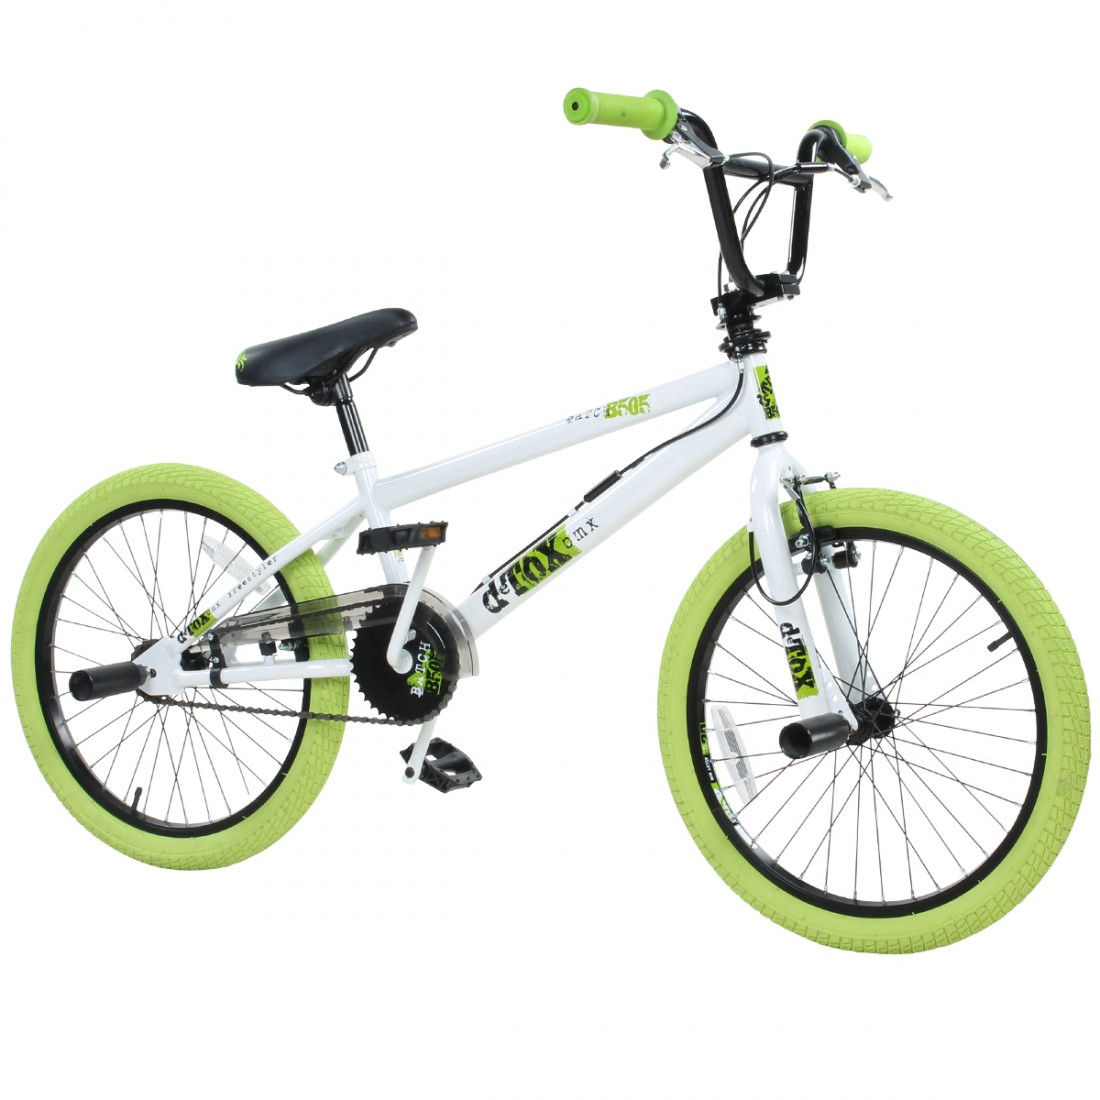 20 zoll bmx bike fahrrad freestyle kinderfahrrad kind rad detox 20 wei gr n ebay. Black Bedroom Furniture Sets. Home Design Ideas